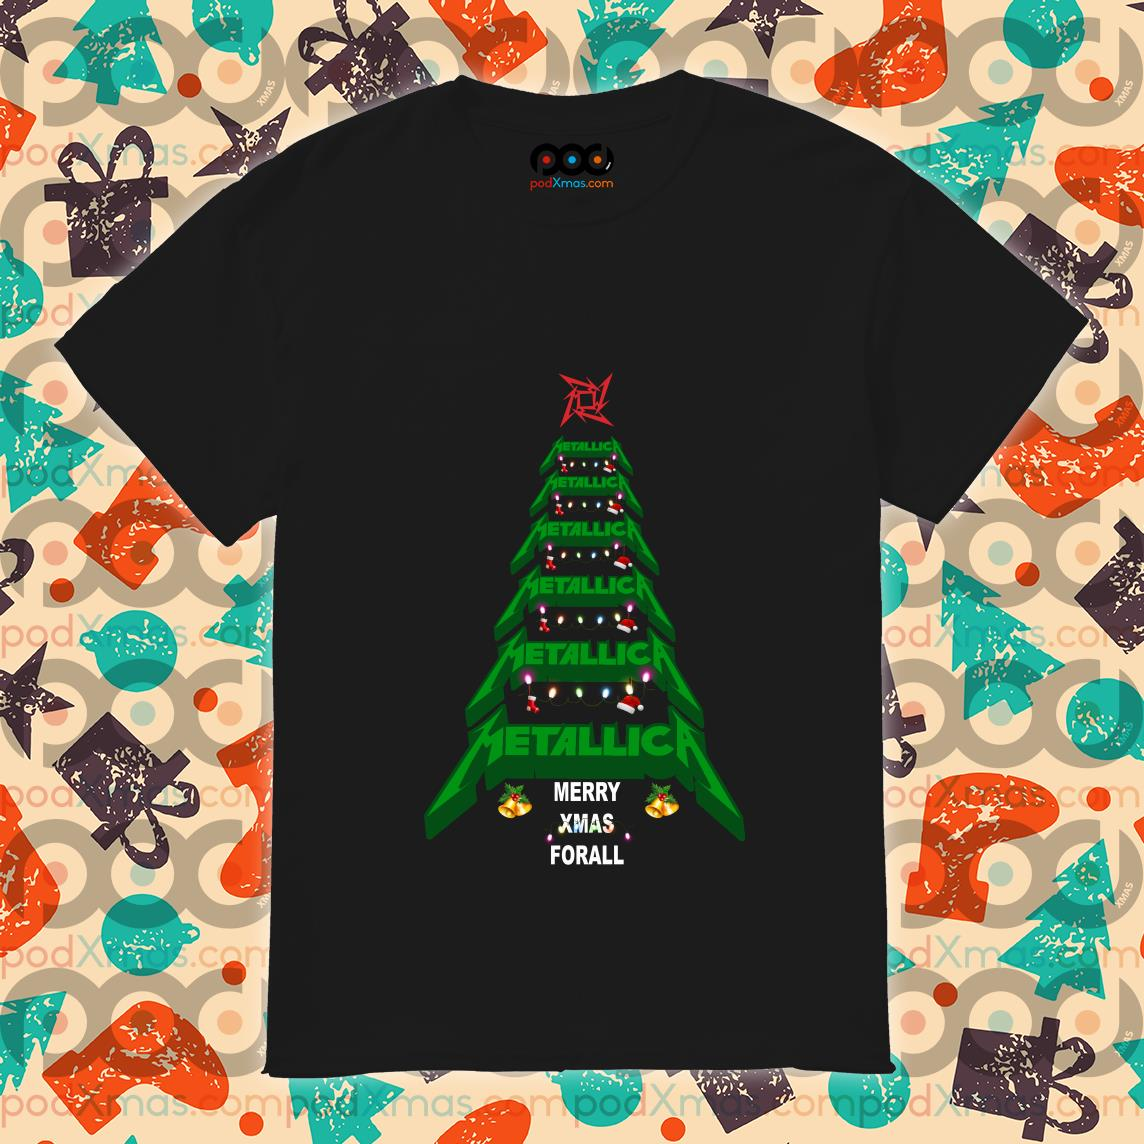 Metallica Merry Xmas For all Green Tree shirt